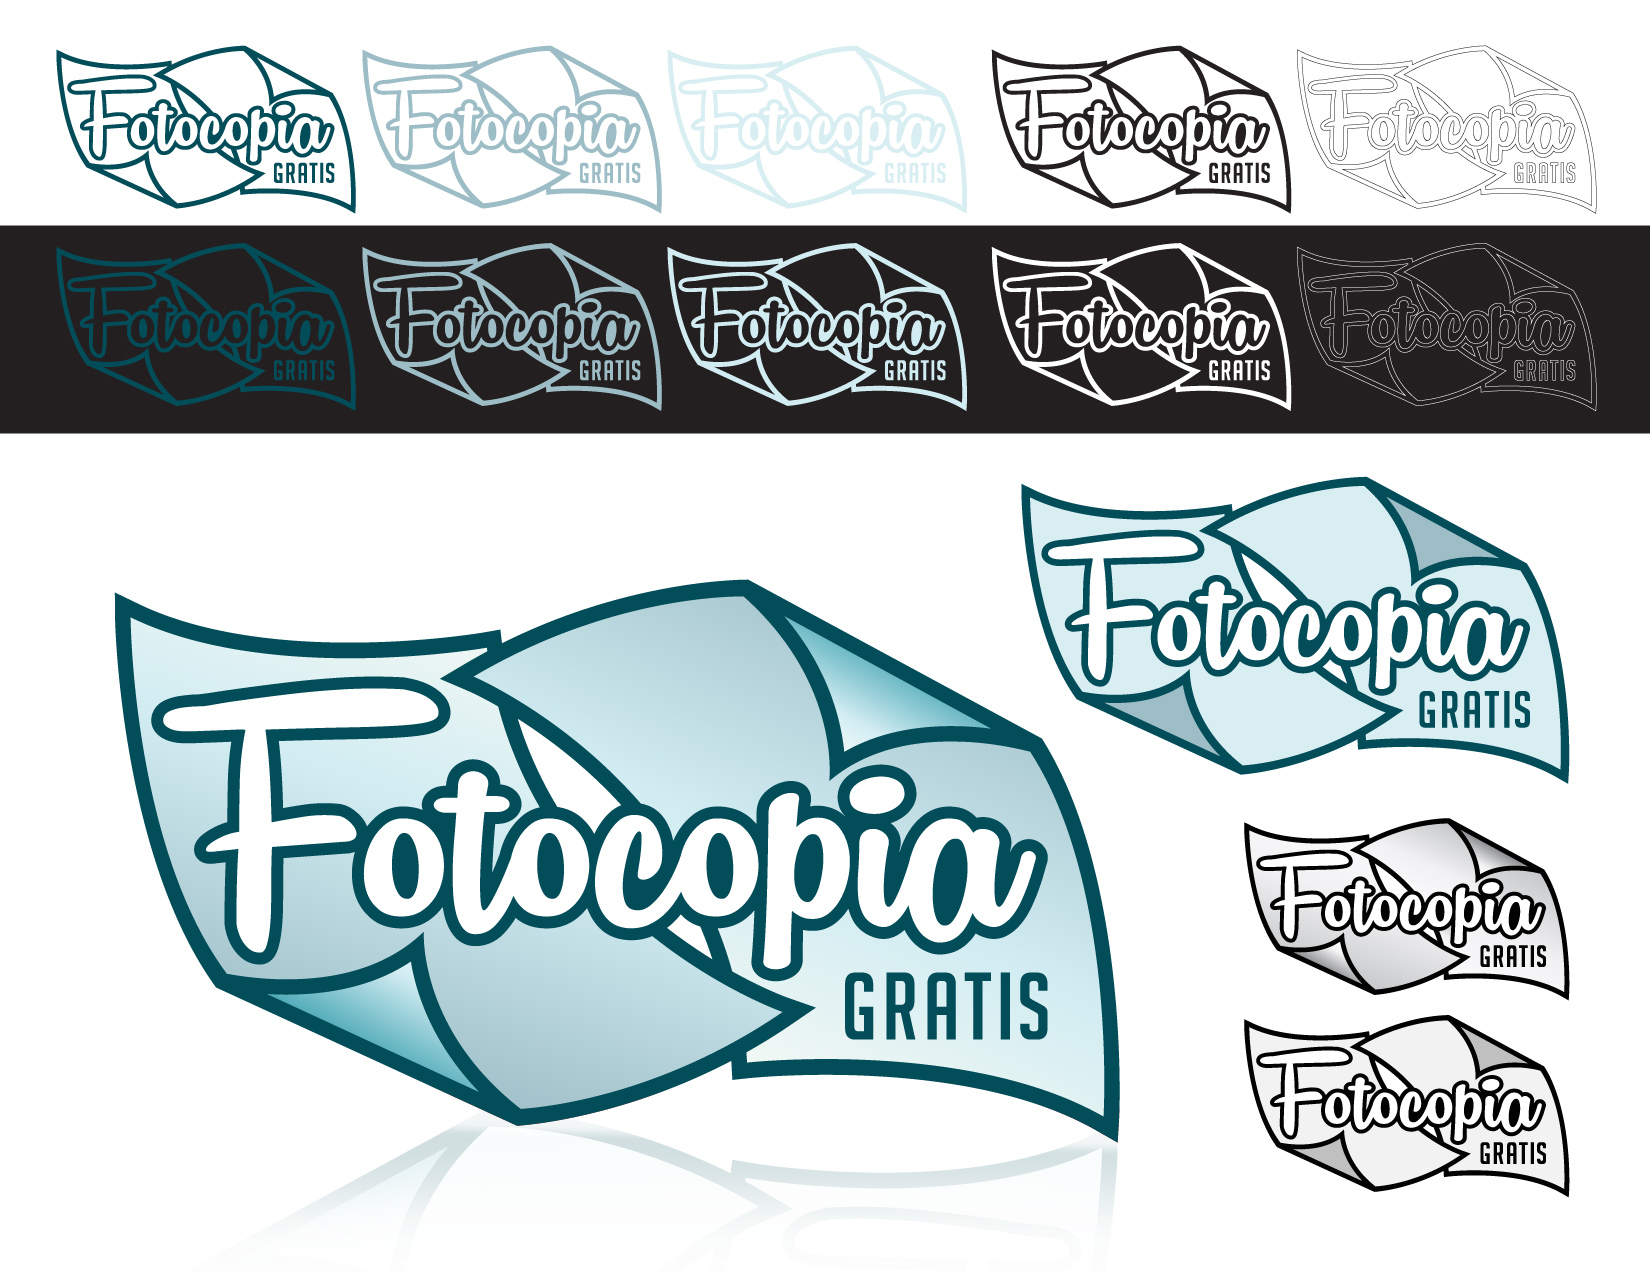 Logo Design by Jesus P Quiroga - Entry No. 170 in the Logo Design Contest Inspiring Logo Design for Fotocopiagratis.